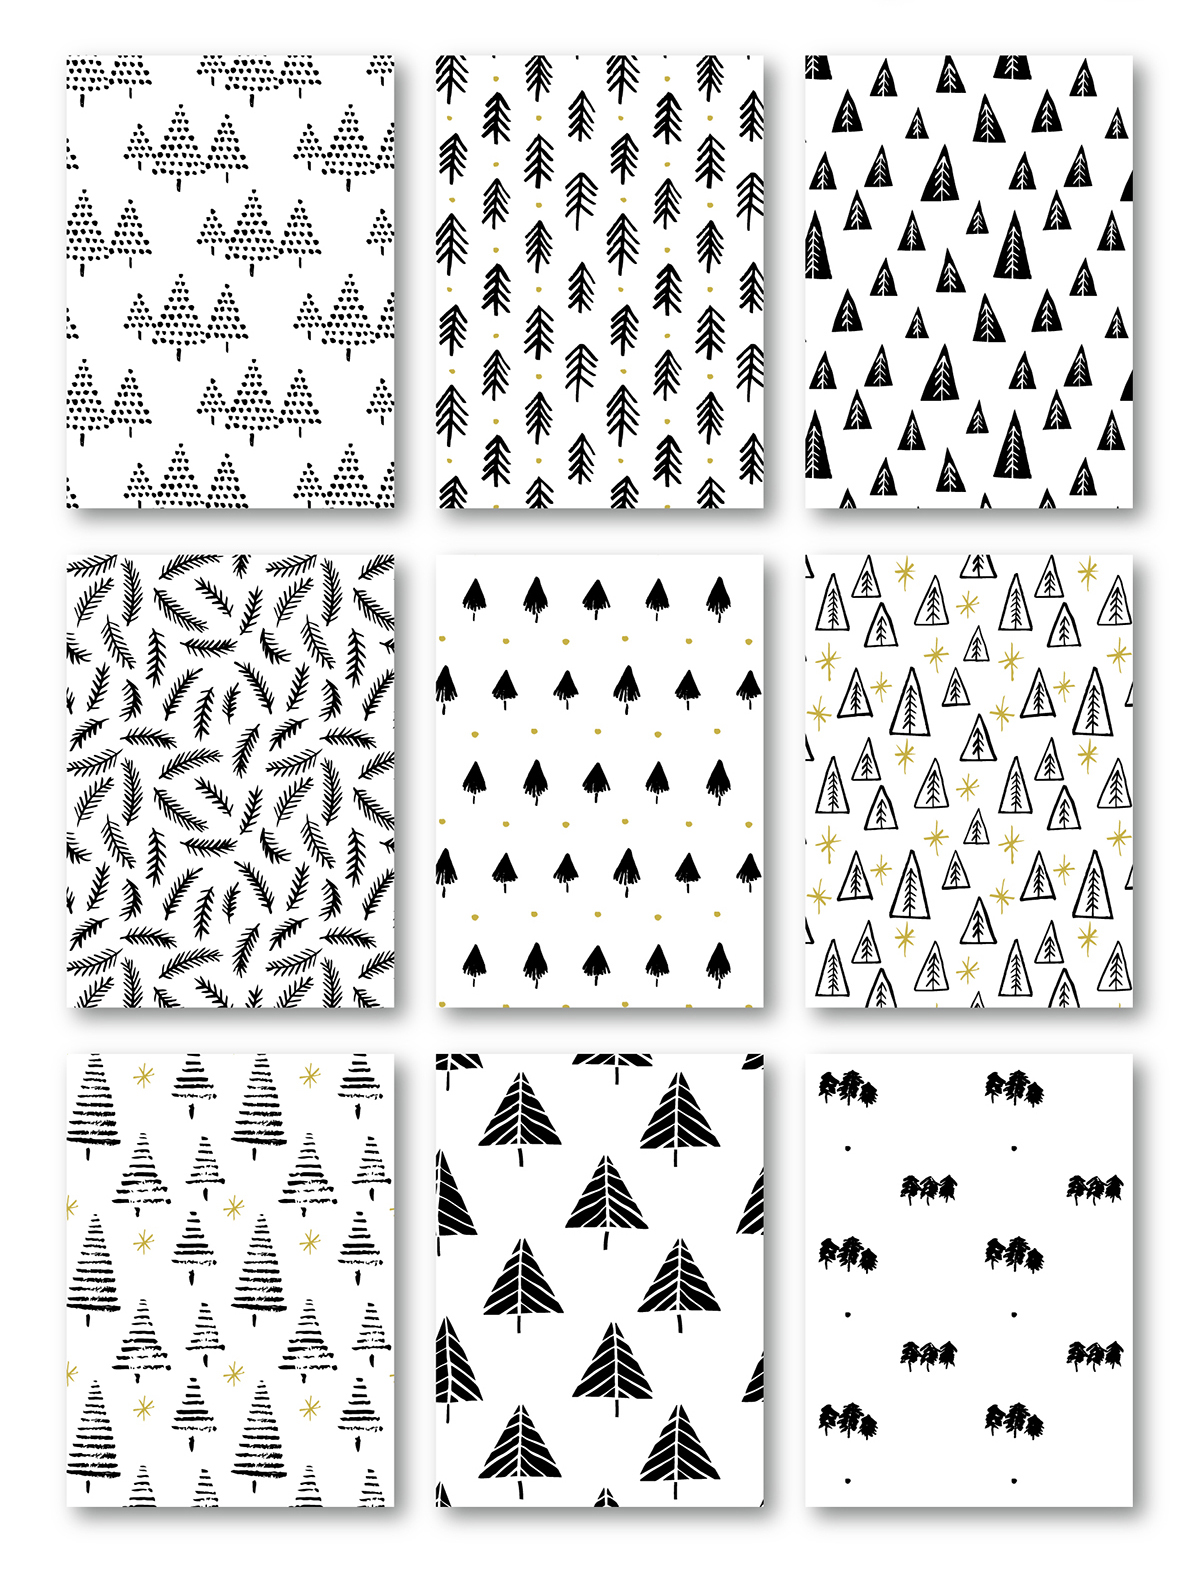 A collection of handdrawn Christmas trees. Decorative elements and repeat patterns by Type and Graphics Lab | Available for sale  |  typeandgraphicslab.com